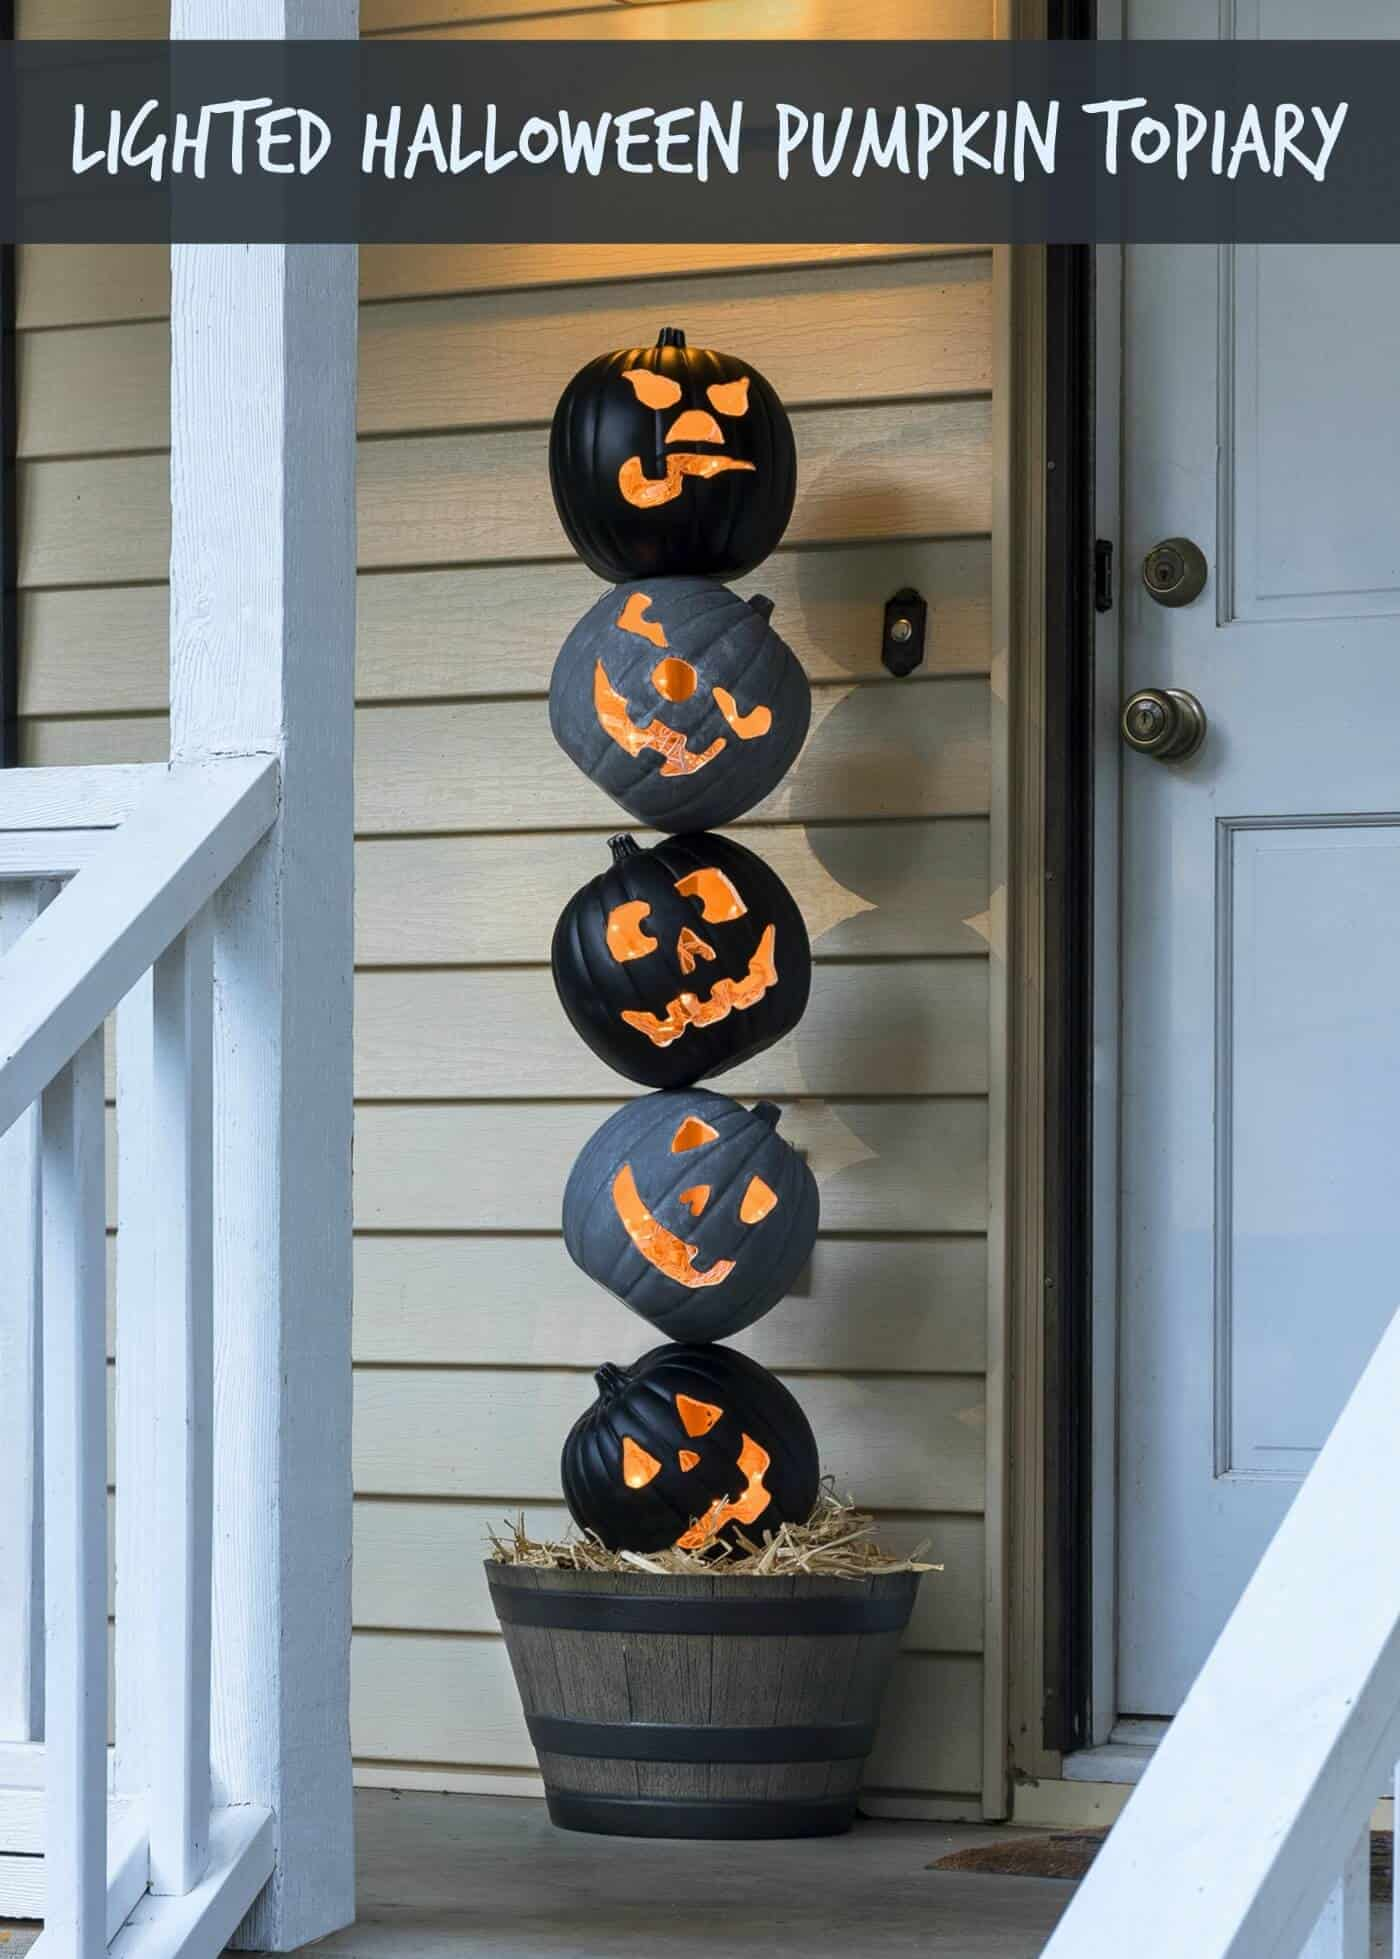 Lighted Outdoor Halloween Pumpkin Topiary